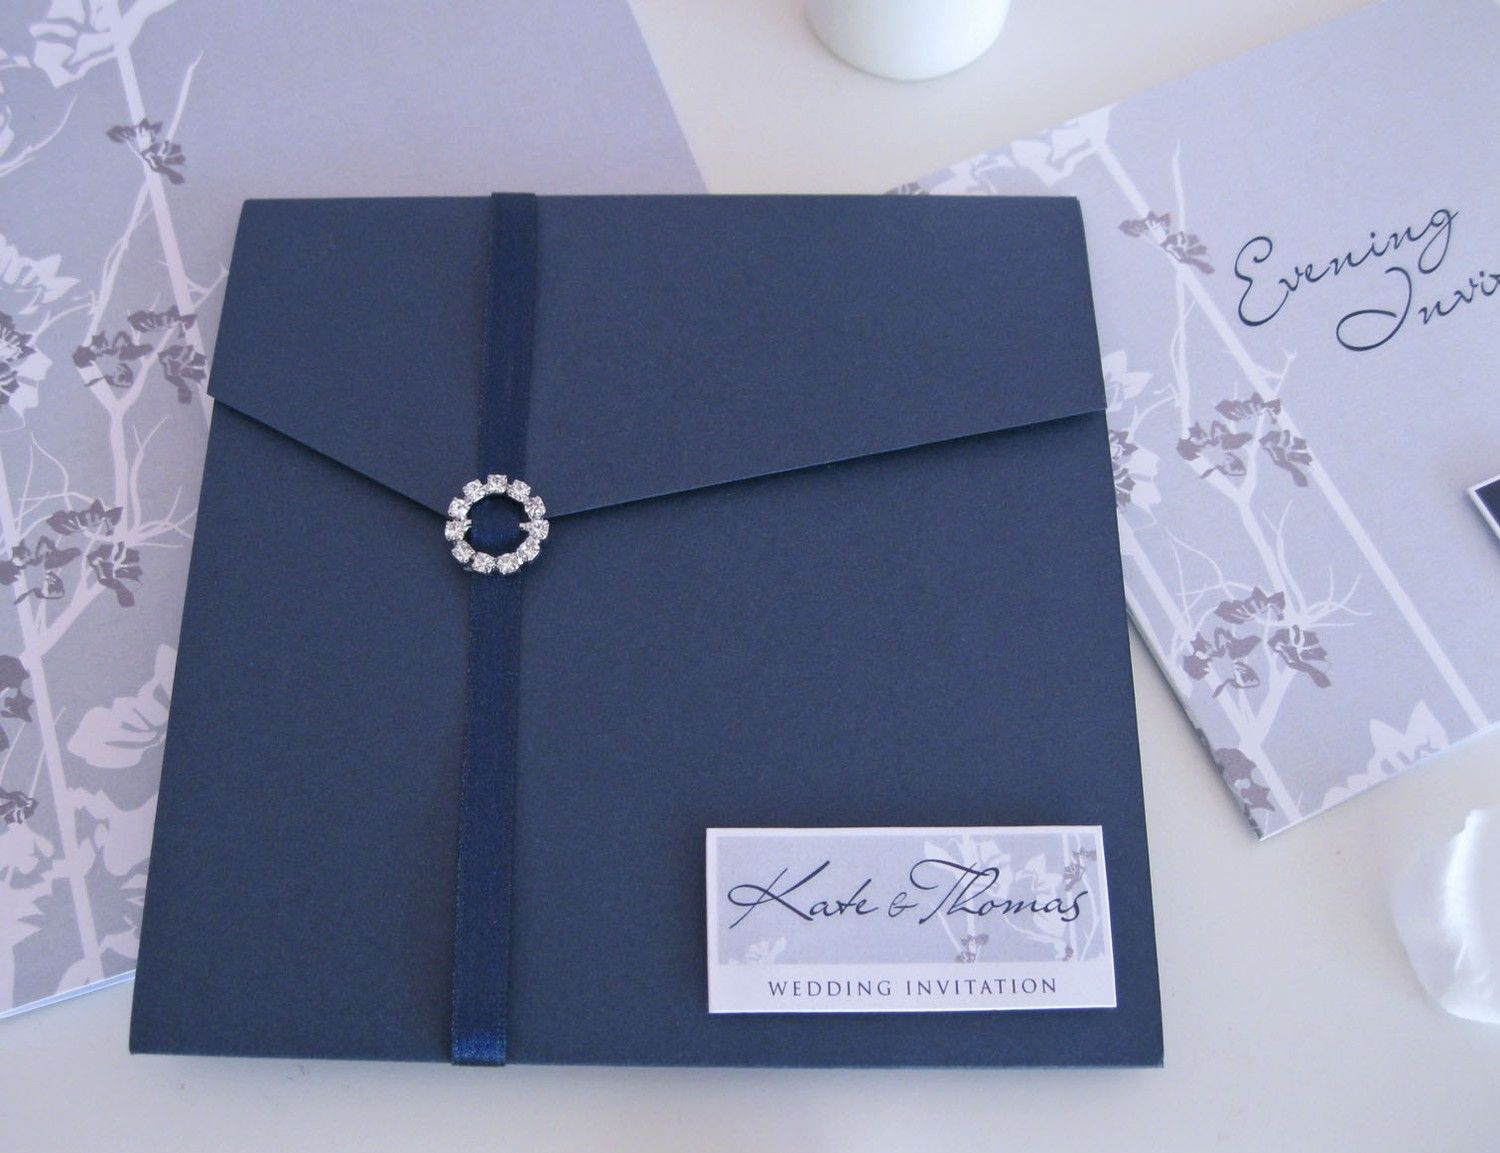 Wedding Invitations Royal Blue And Silver: Royal Blue Silver Black Wedding Invitations